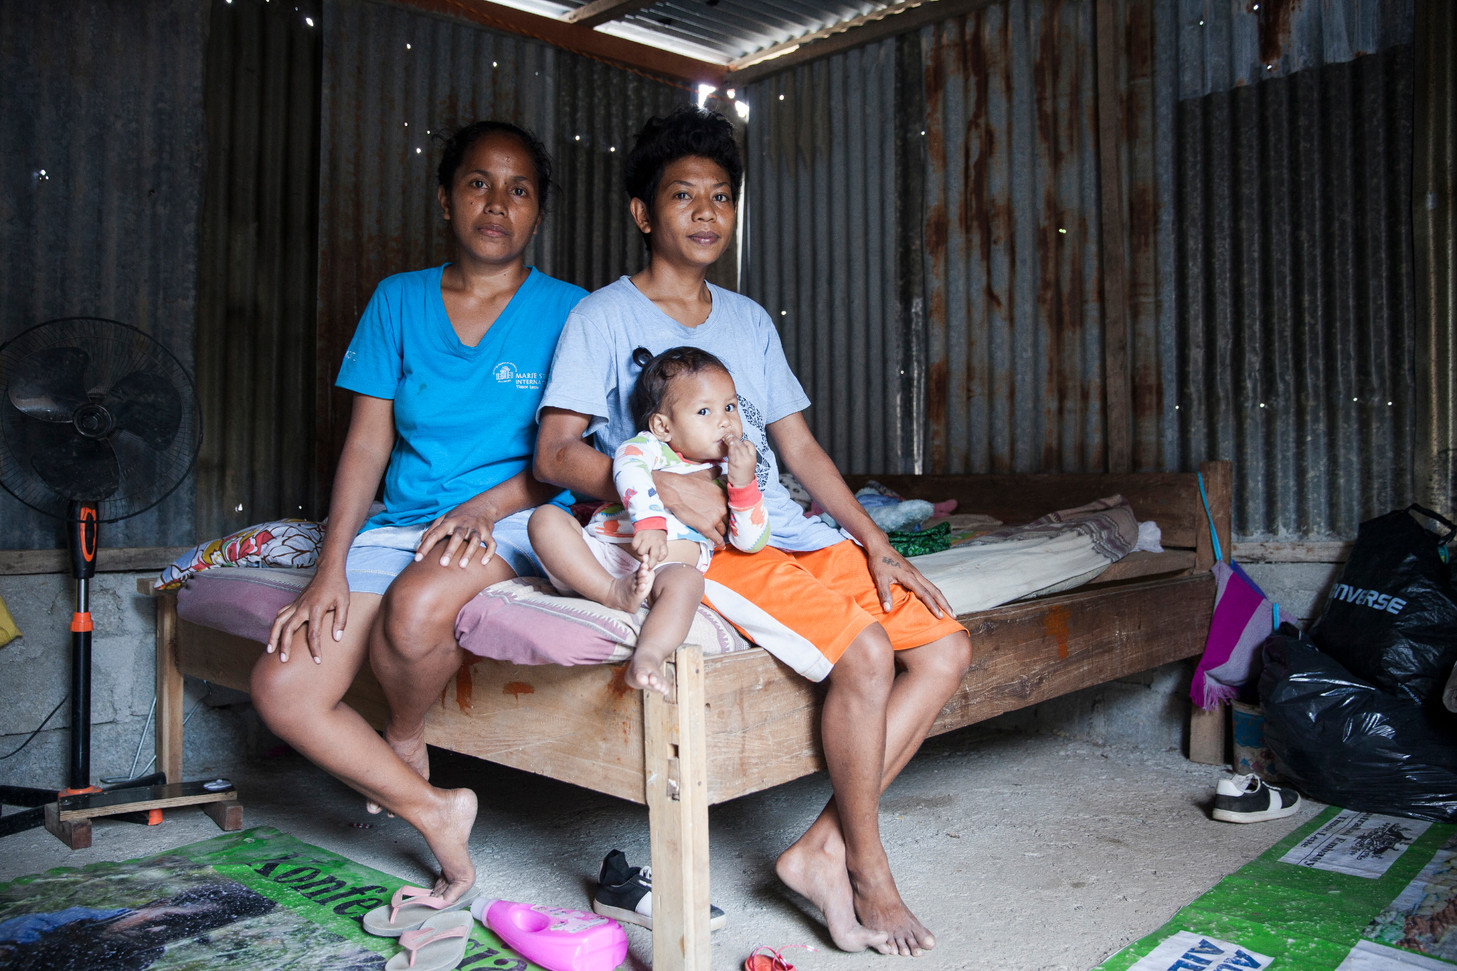 """Zelia da Costa (left), Joker da Silva and little Neurgia pose for a portrait in their house, located in the neighborhood of Has-Laram, Dili, capital of East-Timor. Living together as a same-sex couple in East-Timor has its challenges. Even though Joker wants to be treated as a man, many people see him as a woman. Da Costa and Joker face discrimination, stigma and violence for being a non-traditional couple. Many Timorese people describe them as monsters and a curse of God. """"The society comes up with norms, like: A man has to wear man's clothes, and work like a man. That is why there's discrimination against us,"""" Joker said. """"When I go to the church, many people keep staring at me, like I am a criminal. If I wear these kinds of clothes [like shorts and shirts], why should I go?"""" Da Costa is Neurgia's biological mother from a man she never loved. Da Costa fall in love with Joker, despite the pressures coming from her own family. """"I felt so much secured with her, there was peace and joy, I just wanted to be with her,"""" Da Costa said."""